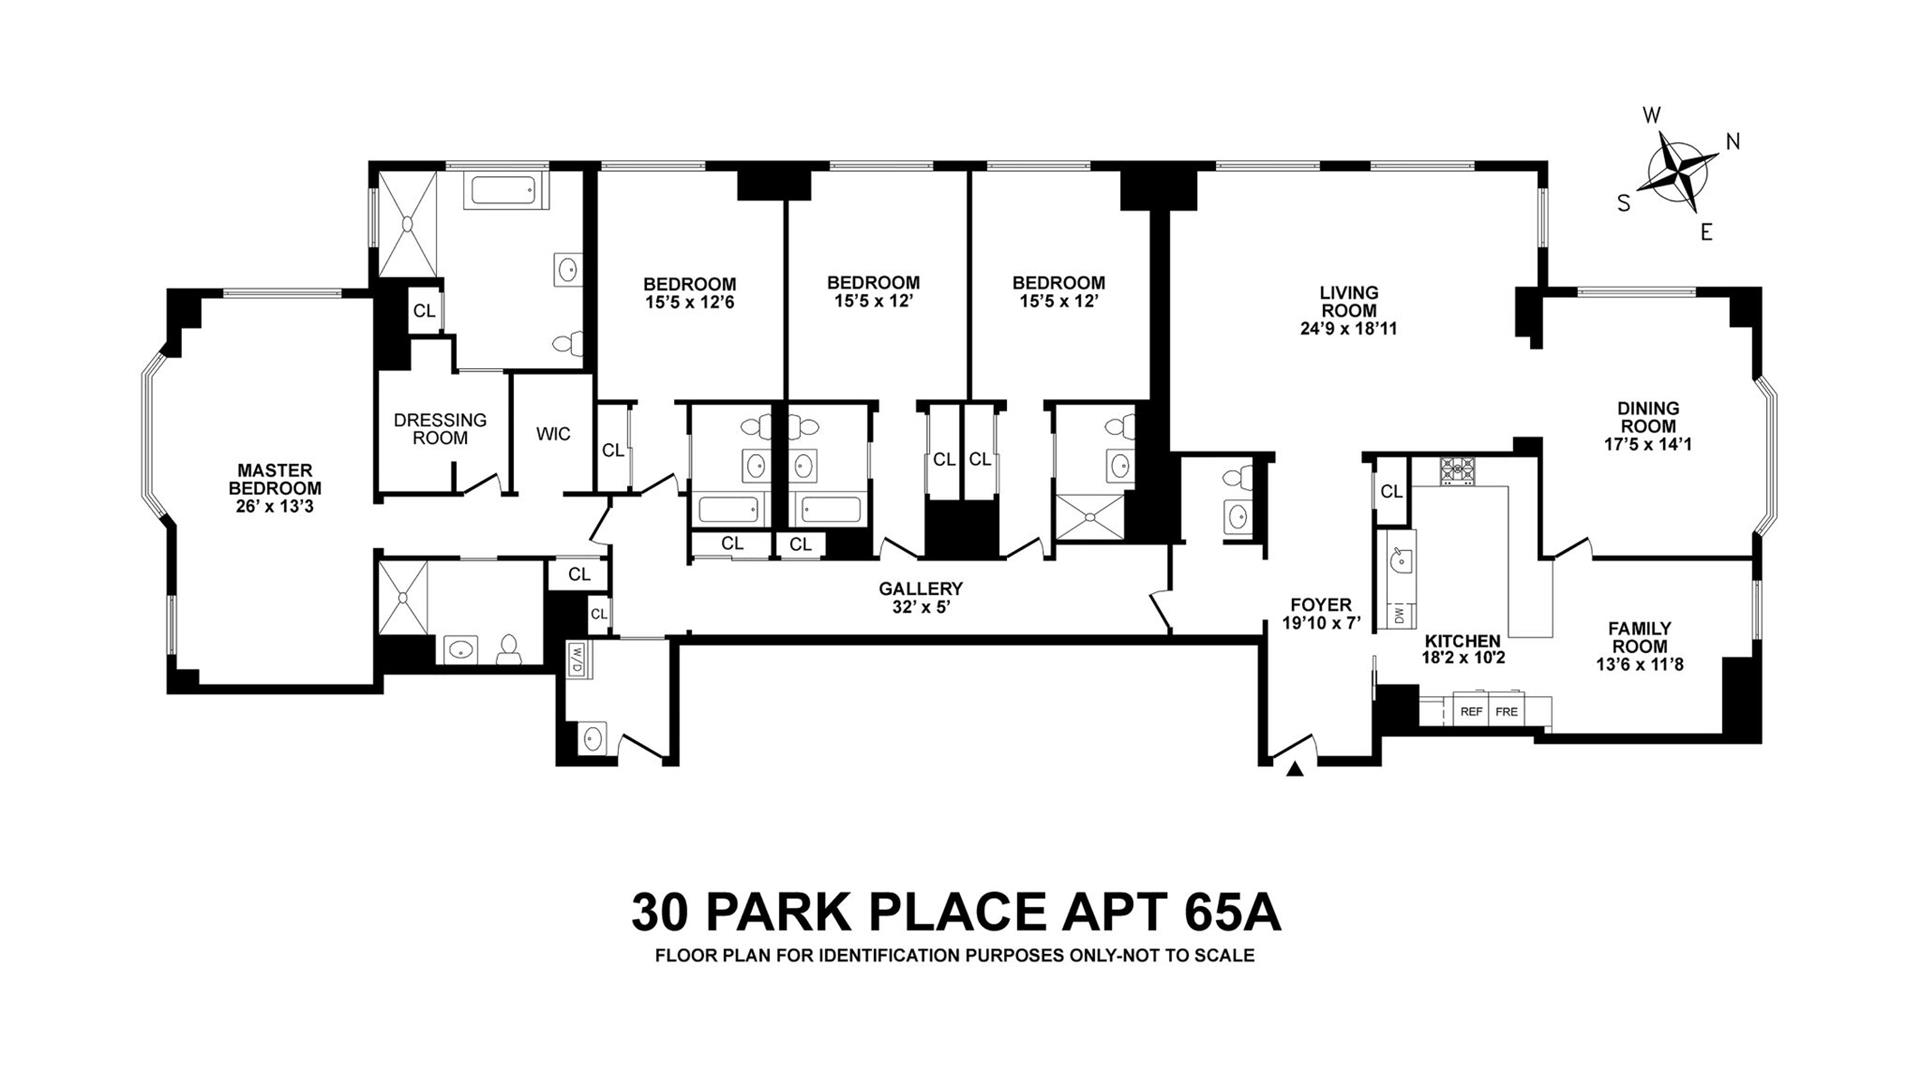 Floor plan of Four Seasons, 30 Park Pl, 65A - TriBeCa, New York